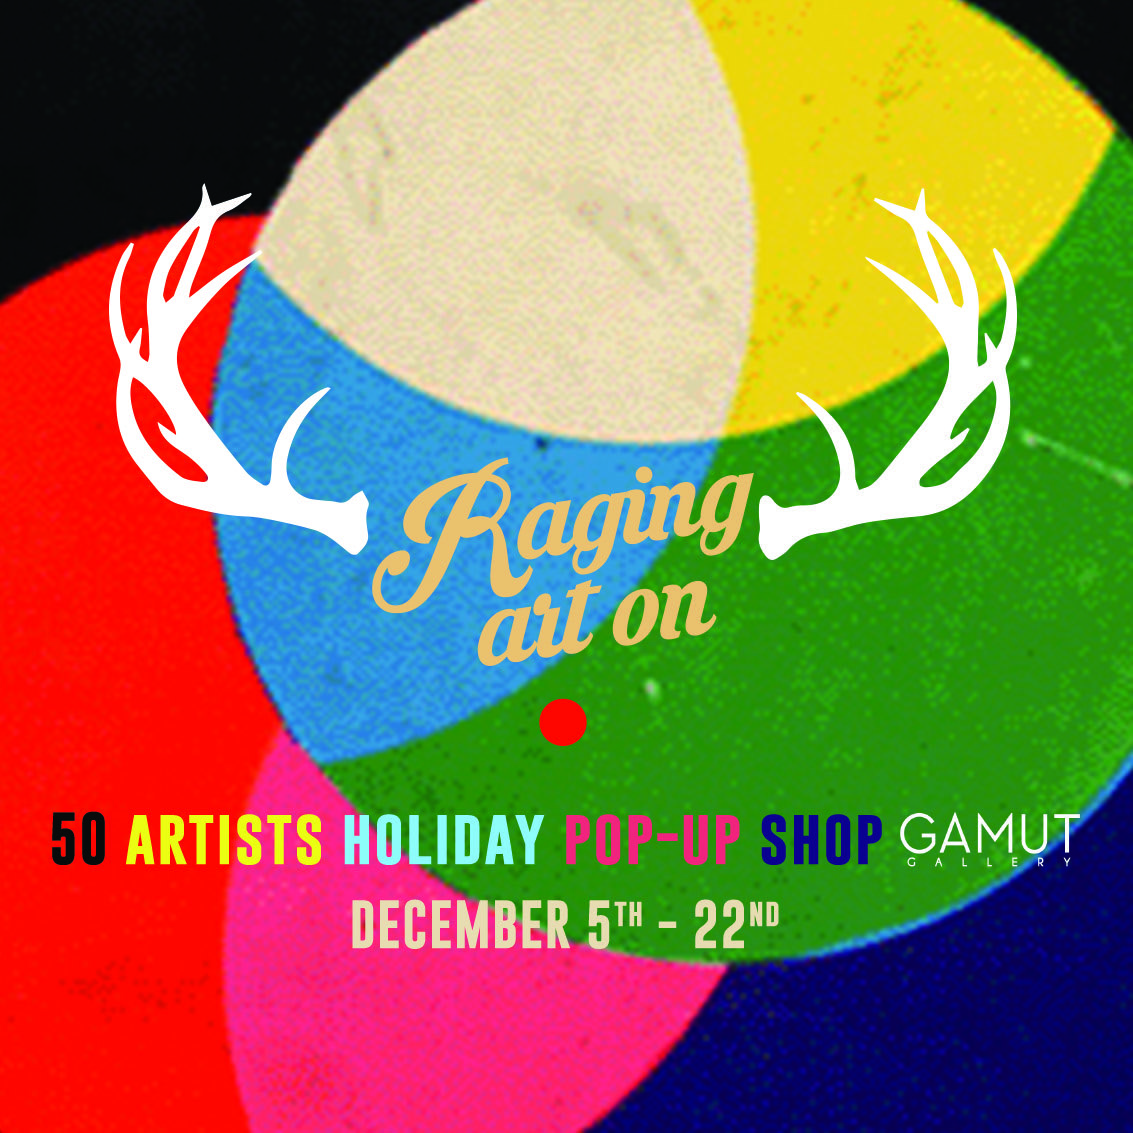 Raging Art on Show at Gamut Gallery - December 2018